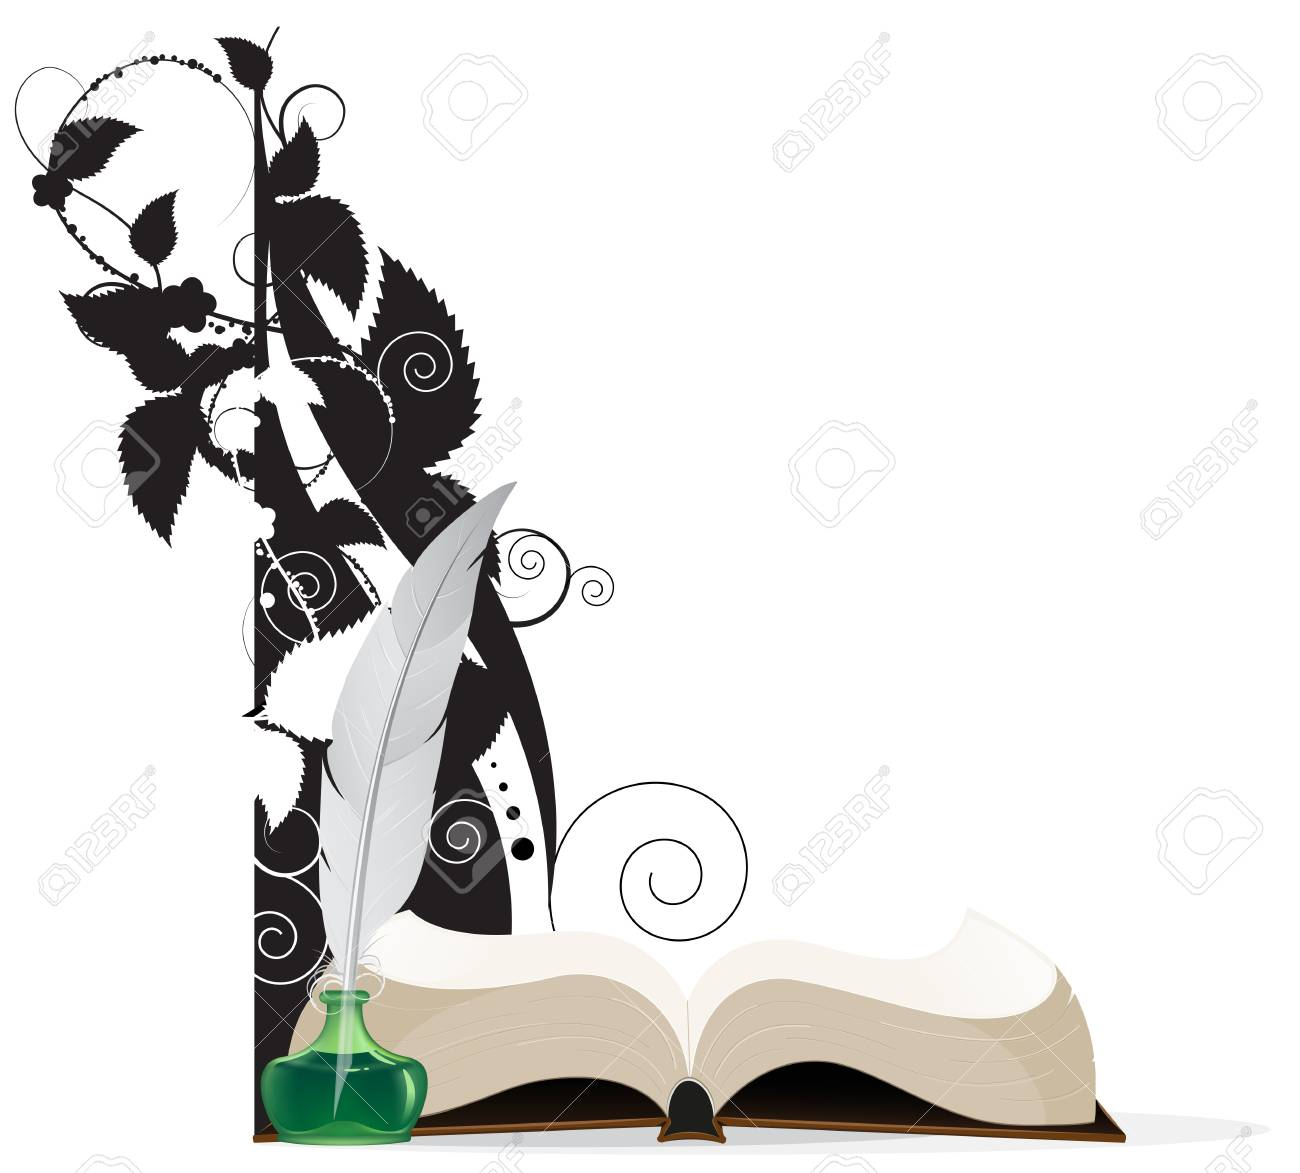 Open hardcover book and floral silhouettes on a white background. Stock Vector - 22910414